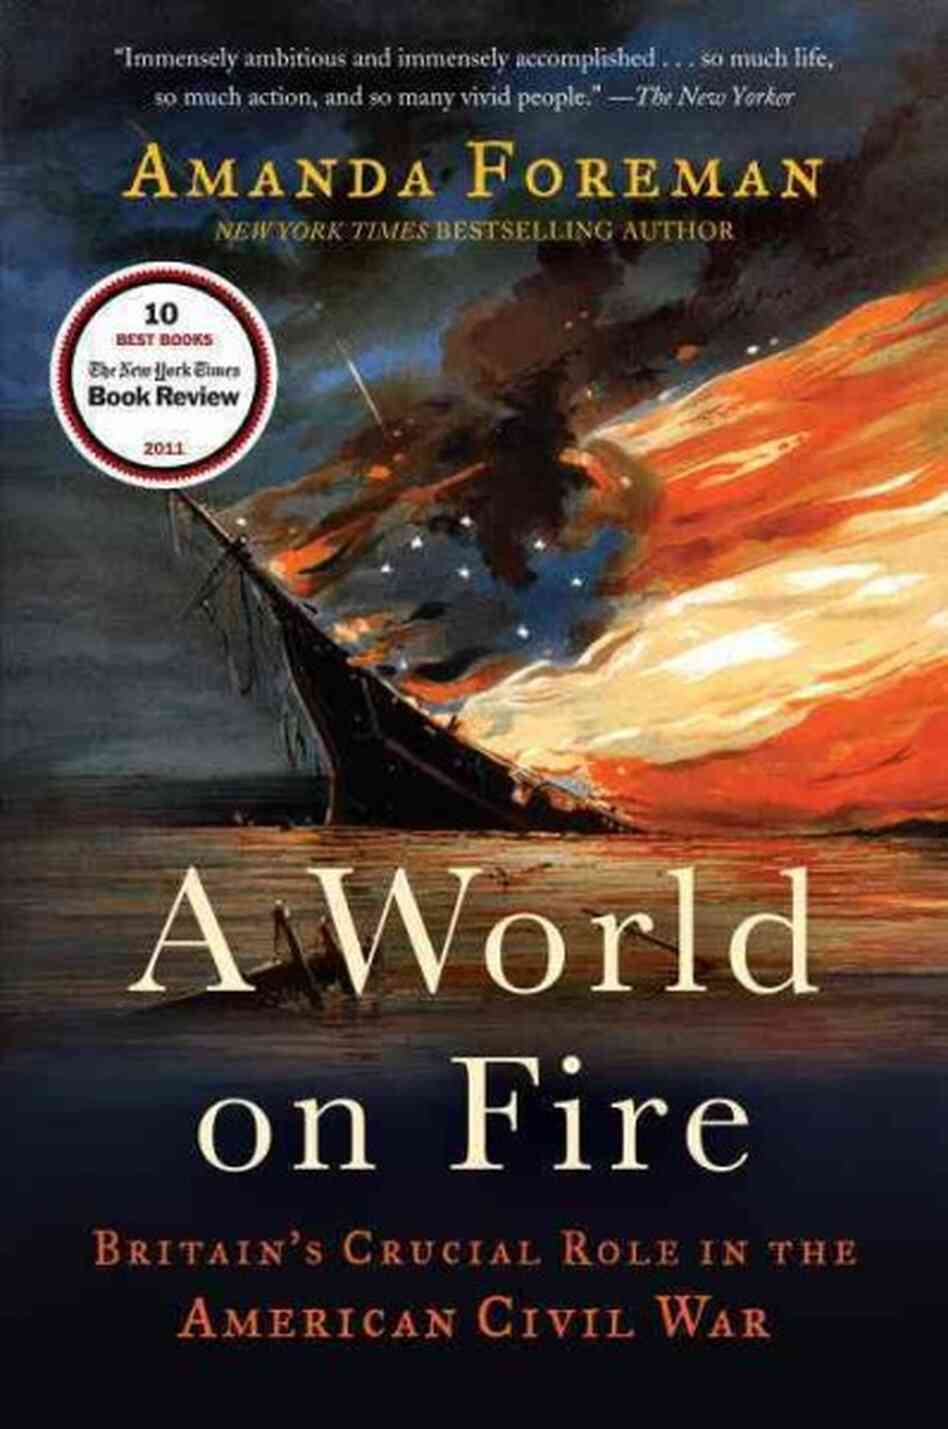 A World on Fire